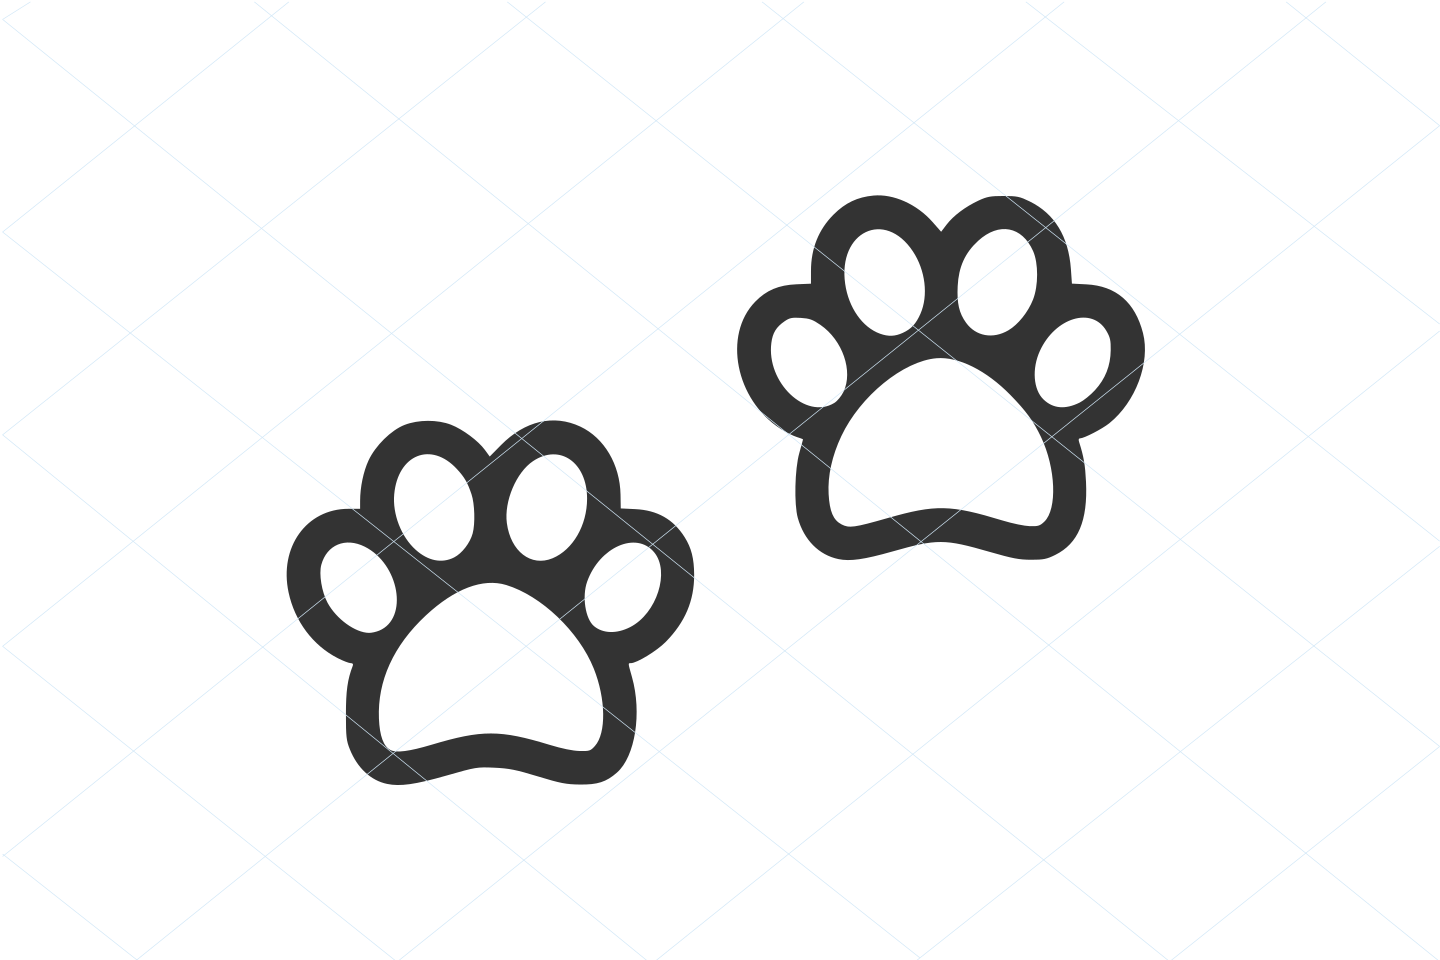 Cute paw svg, paw cut file, paw silhouette, paw vector, cute pet paw, paw lover, animal lover, decal clip art stencil sticker template